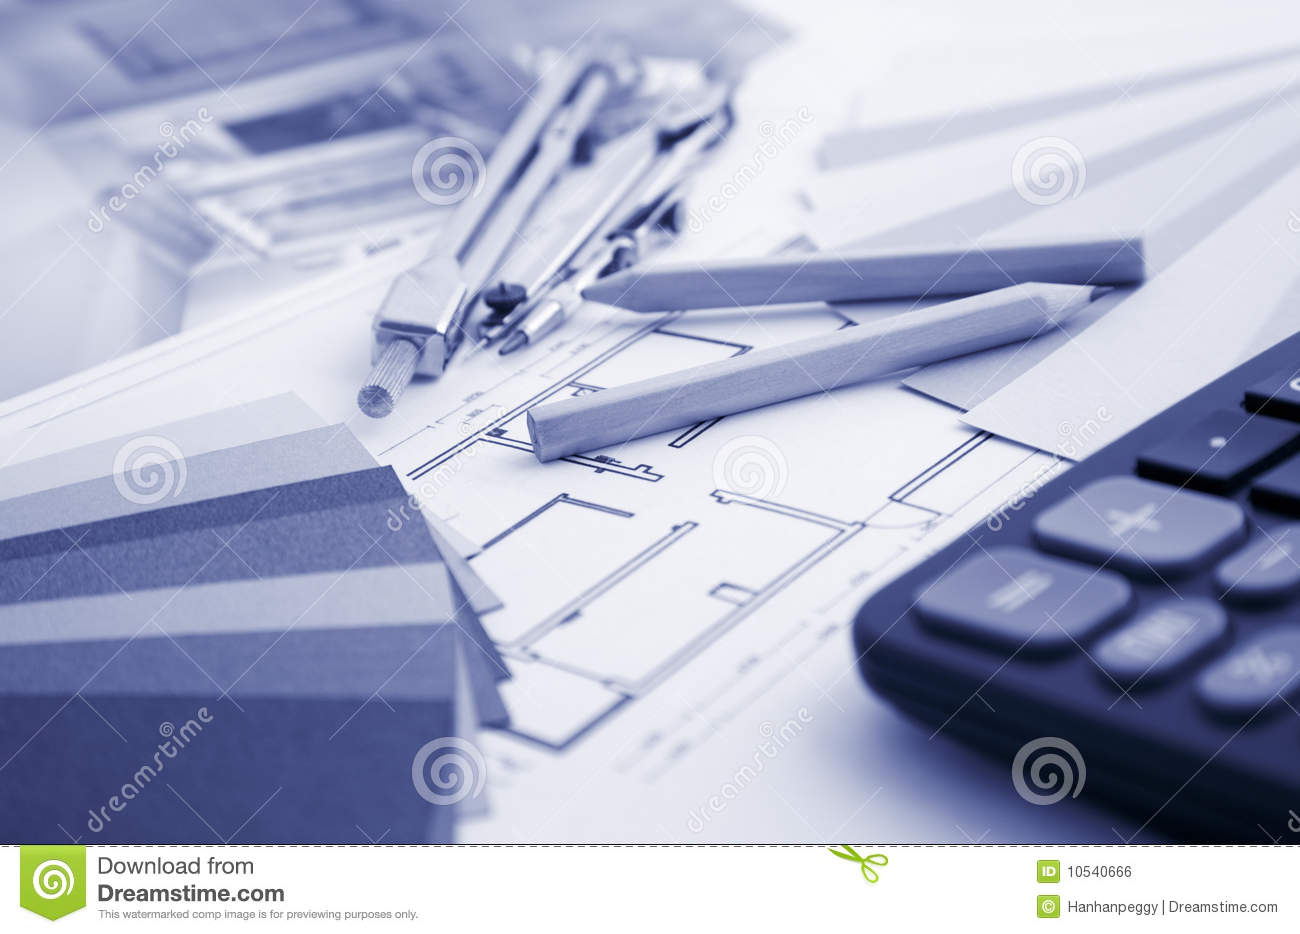 Residential interior design and tools royalty free stock for Interior design layout tool